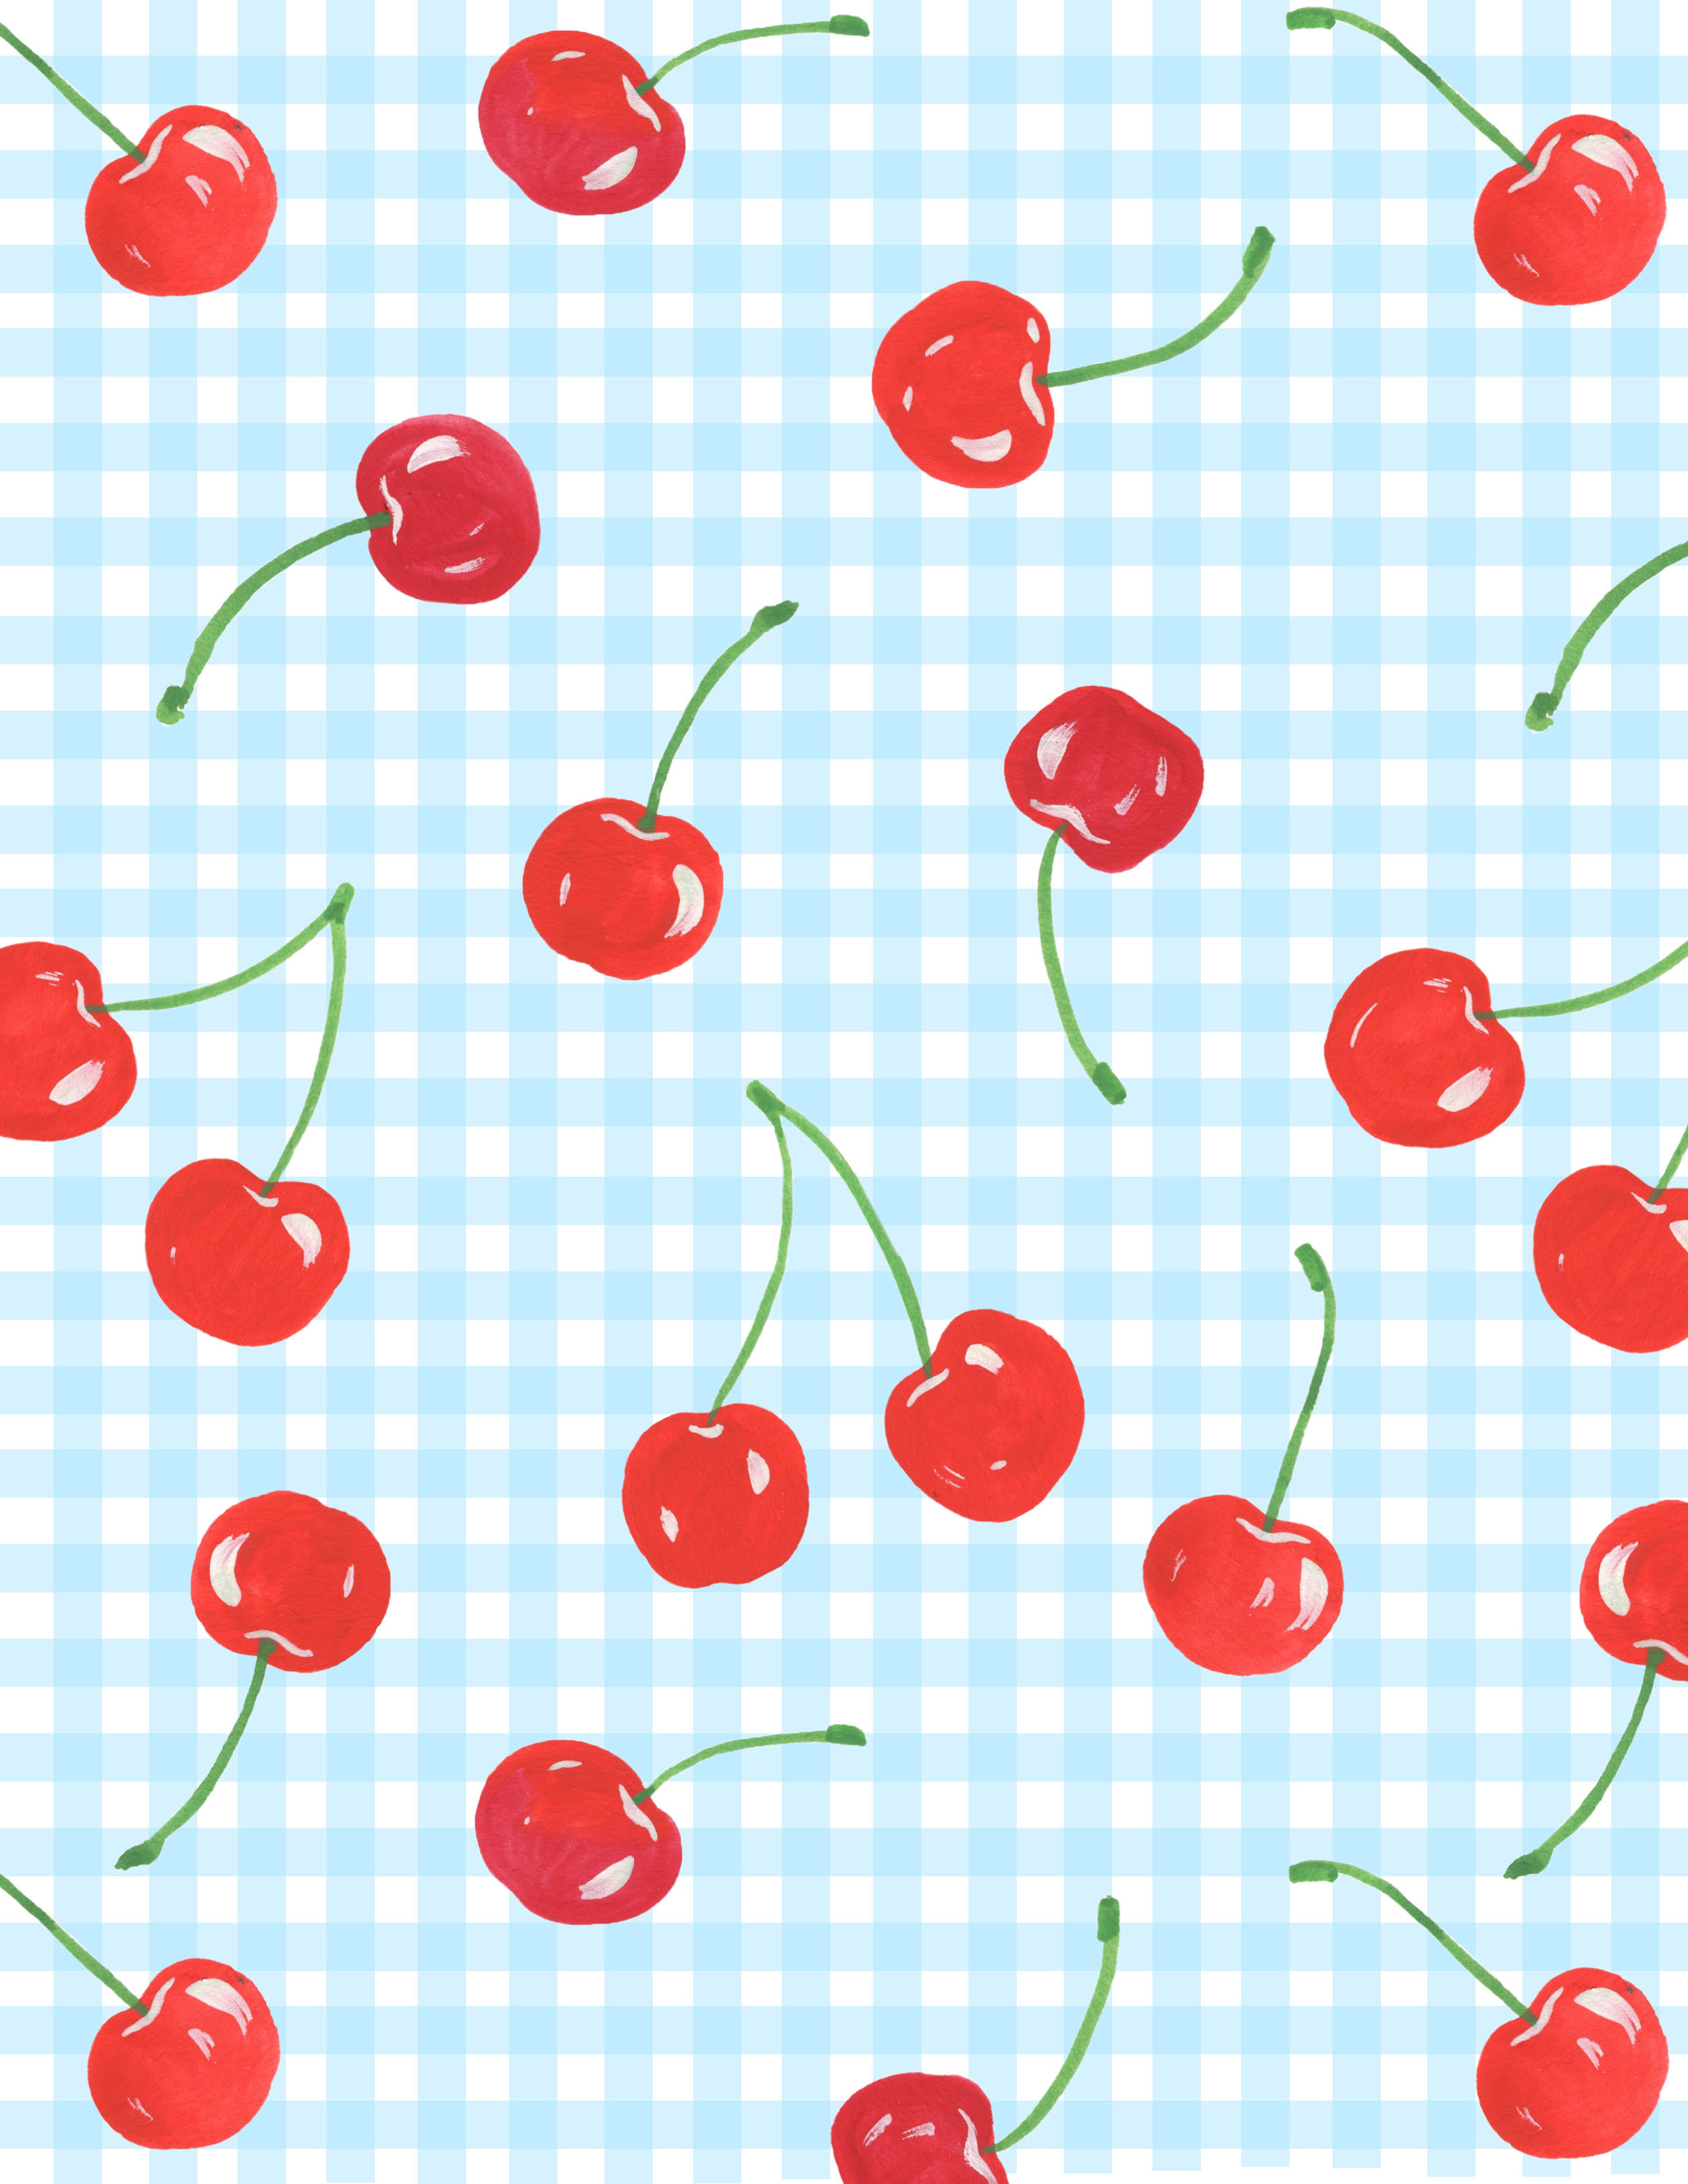 Cellrare-cherries.jpg